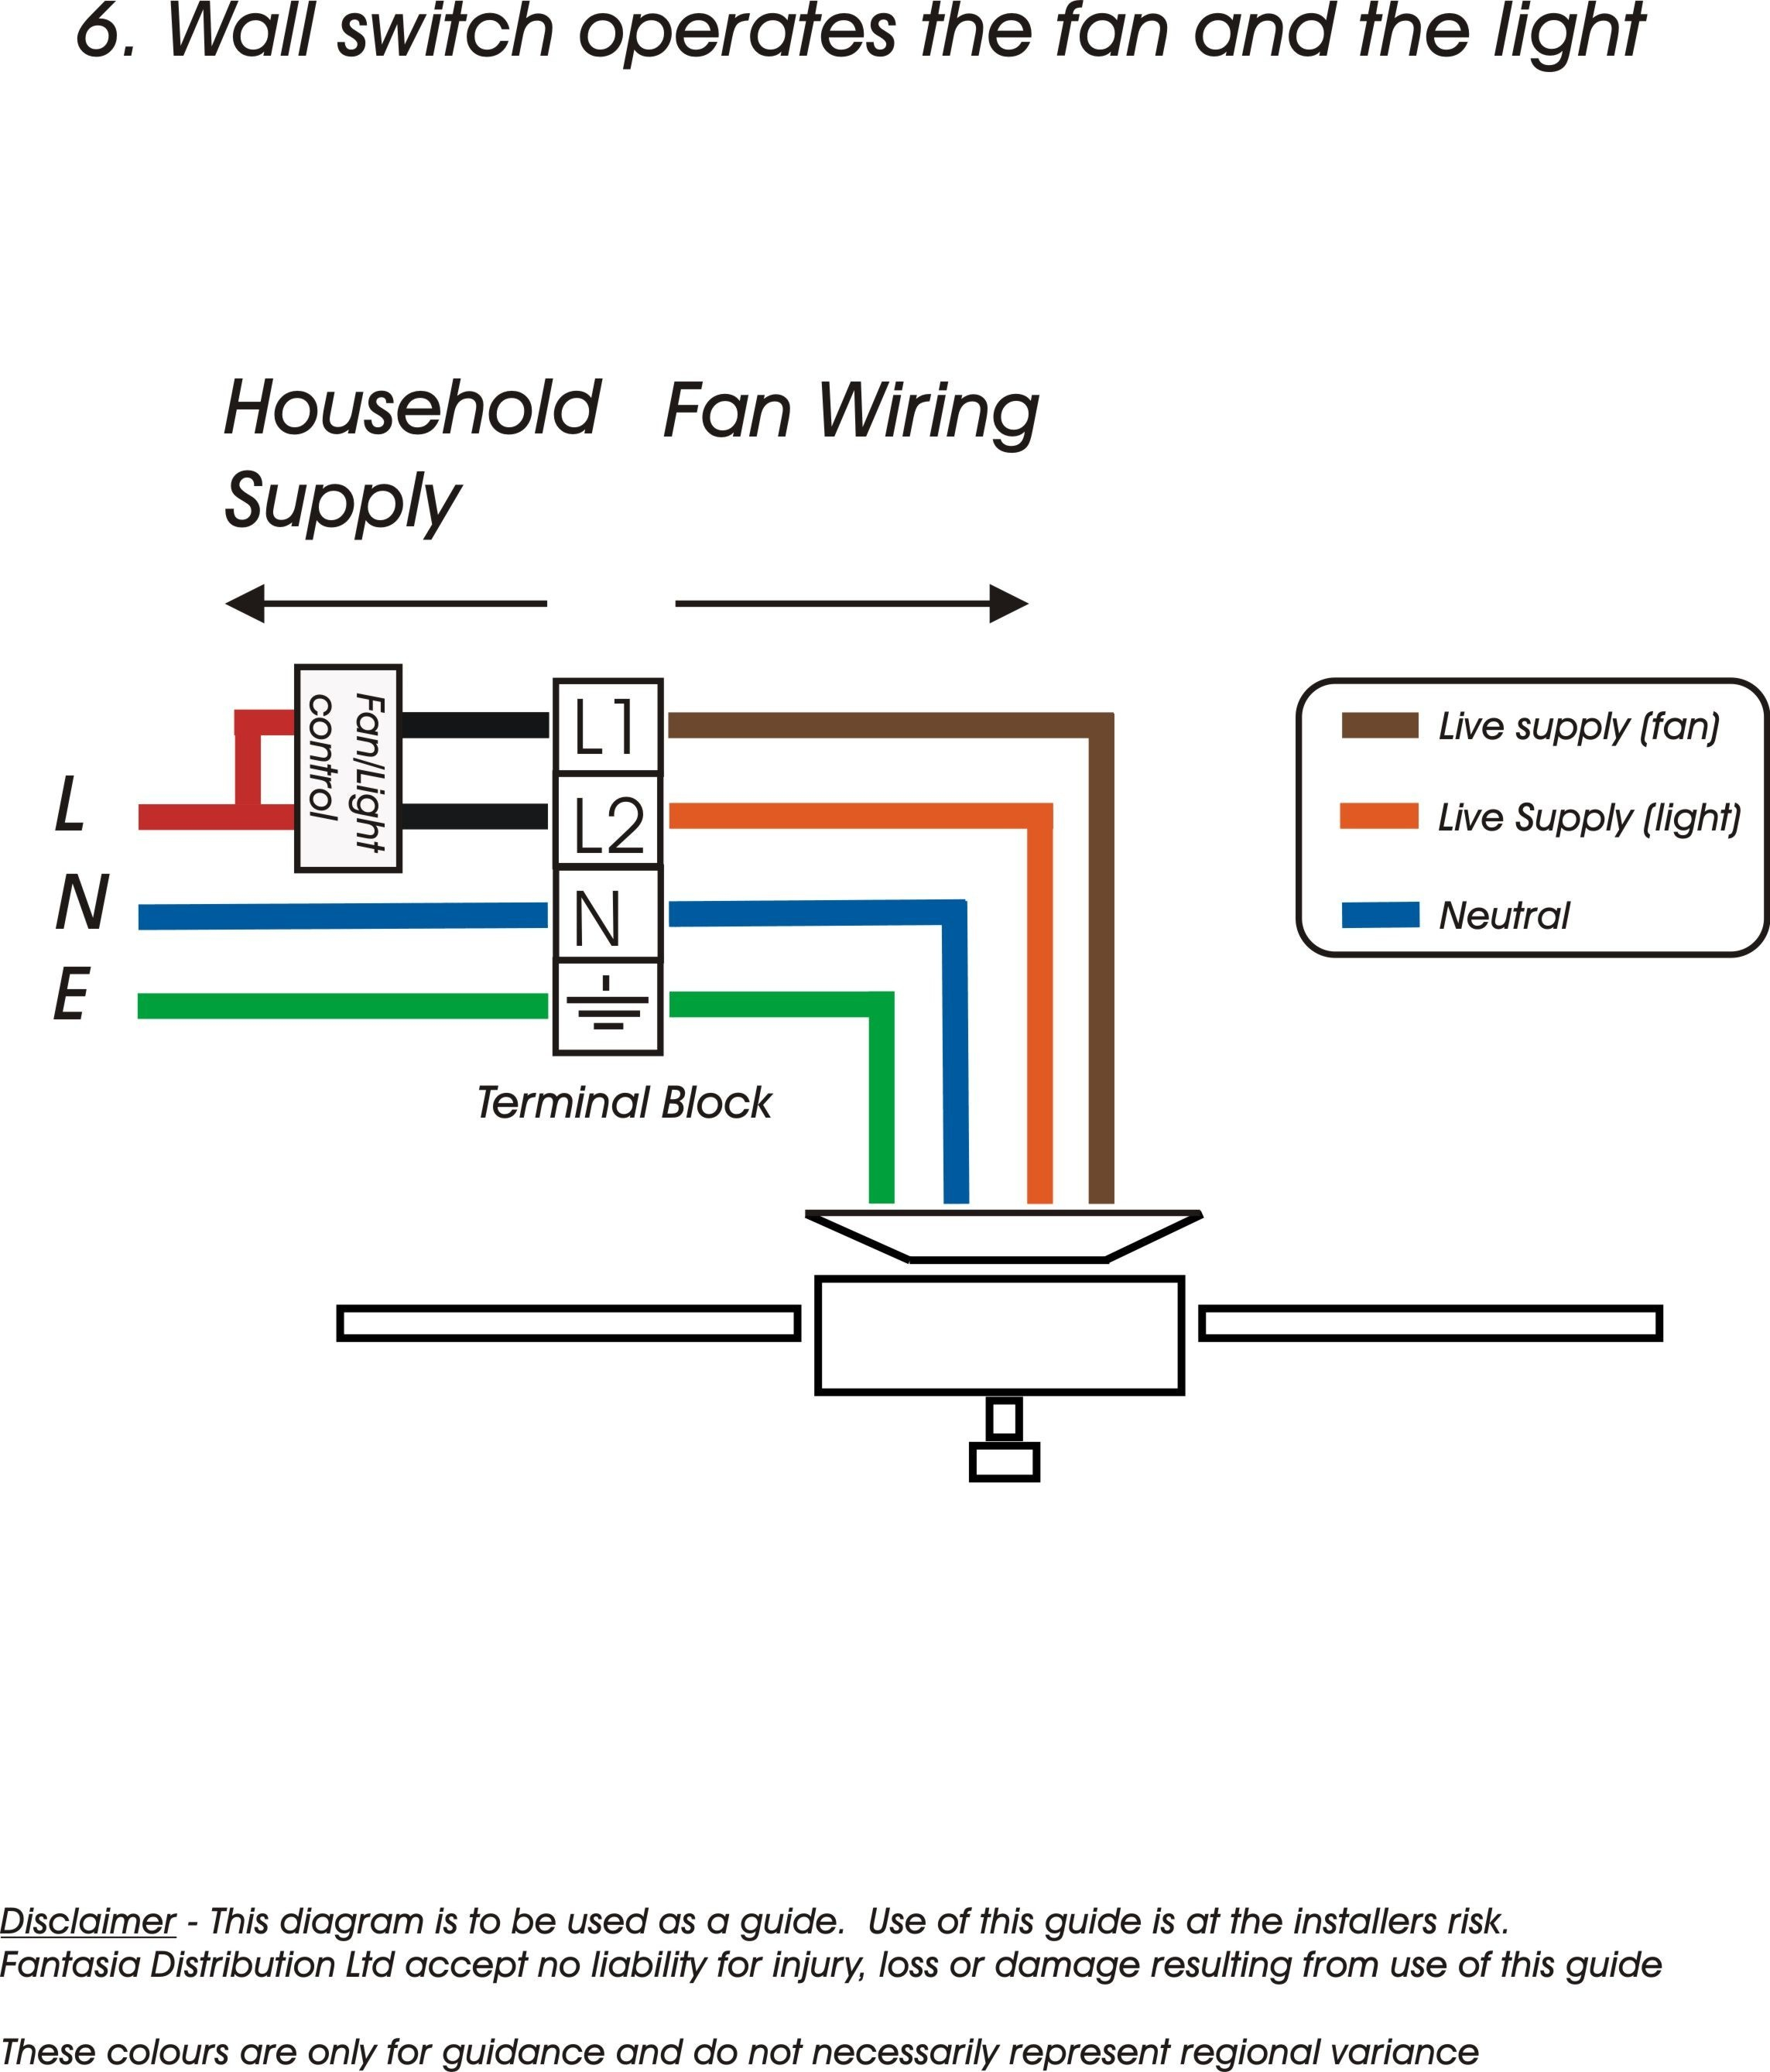 craftmade ceiling fan wiring diagram Download-Wiring Diagram for Craftmade Ceiling Fan Valid Ceiling Fan Electrical Wiring Diagram Health Shop 17-a